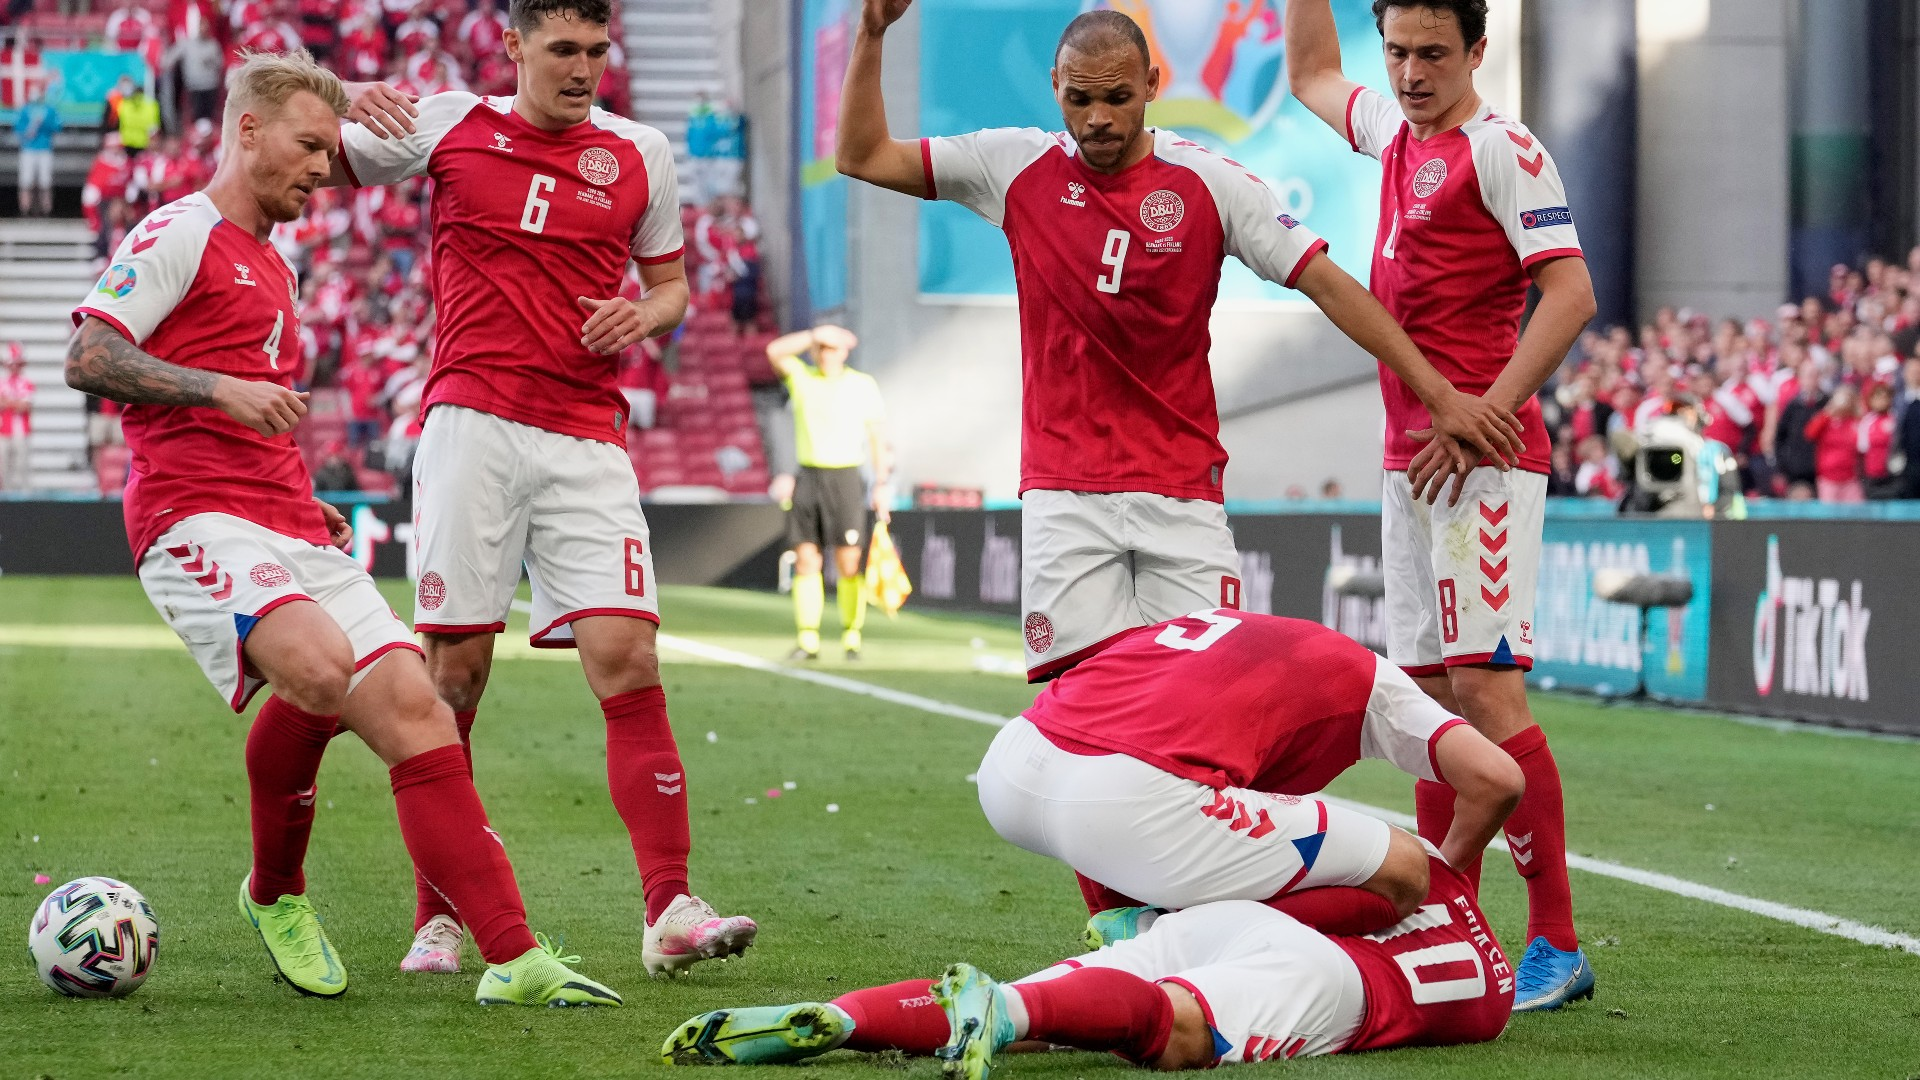 Heart attack causes EURO match to be suspended